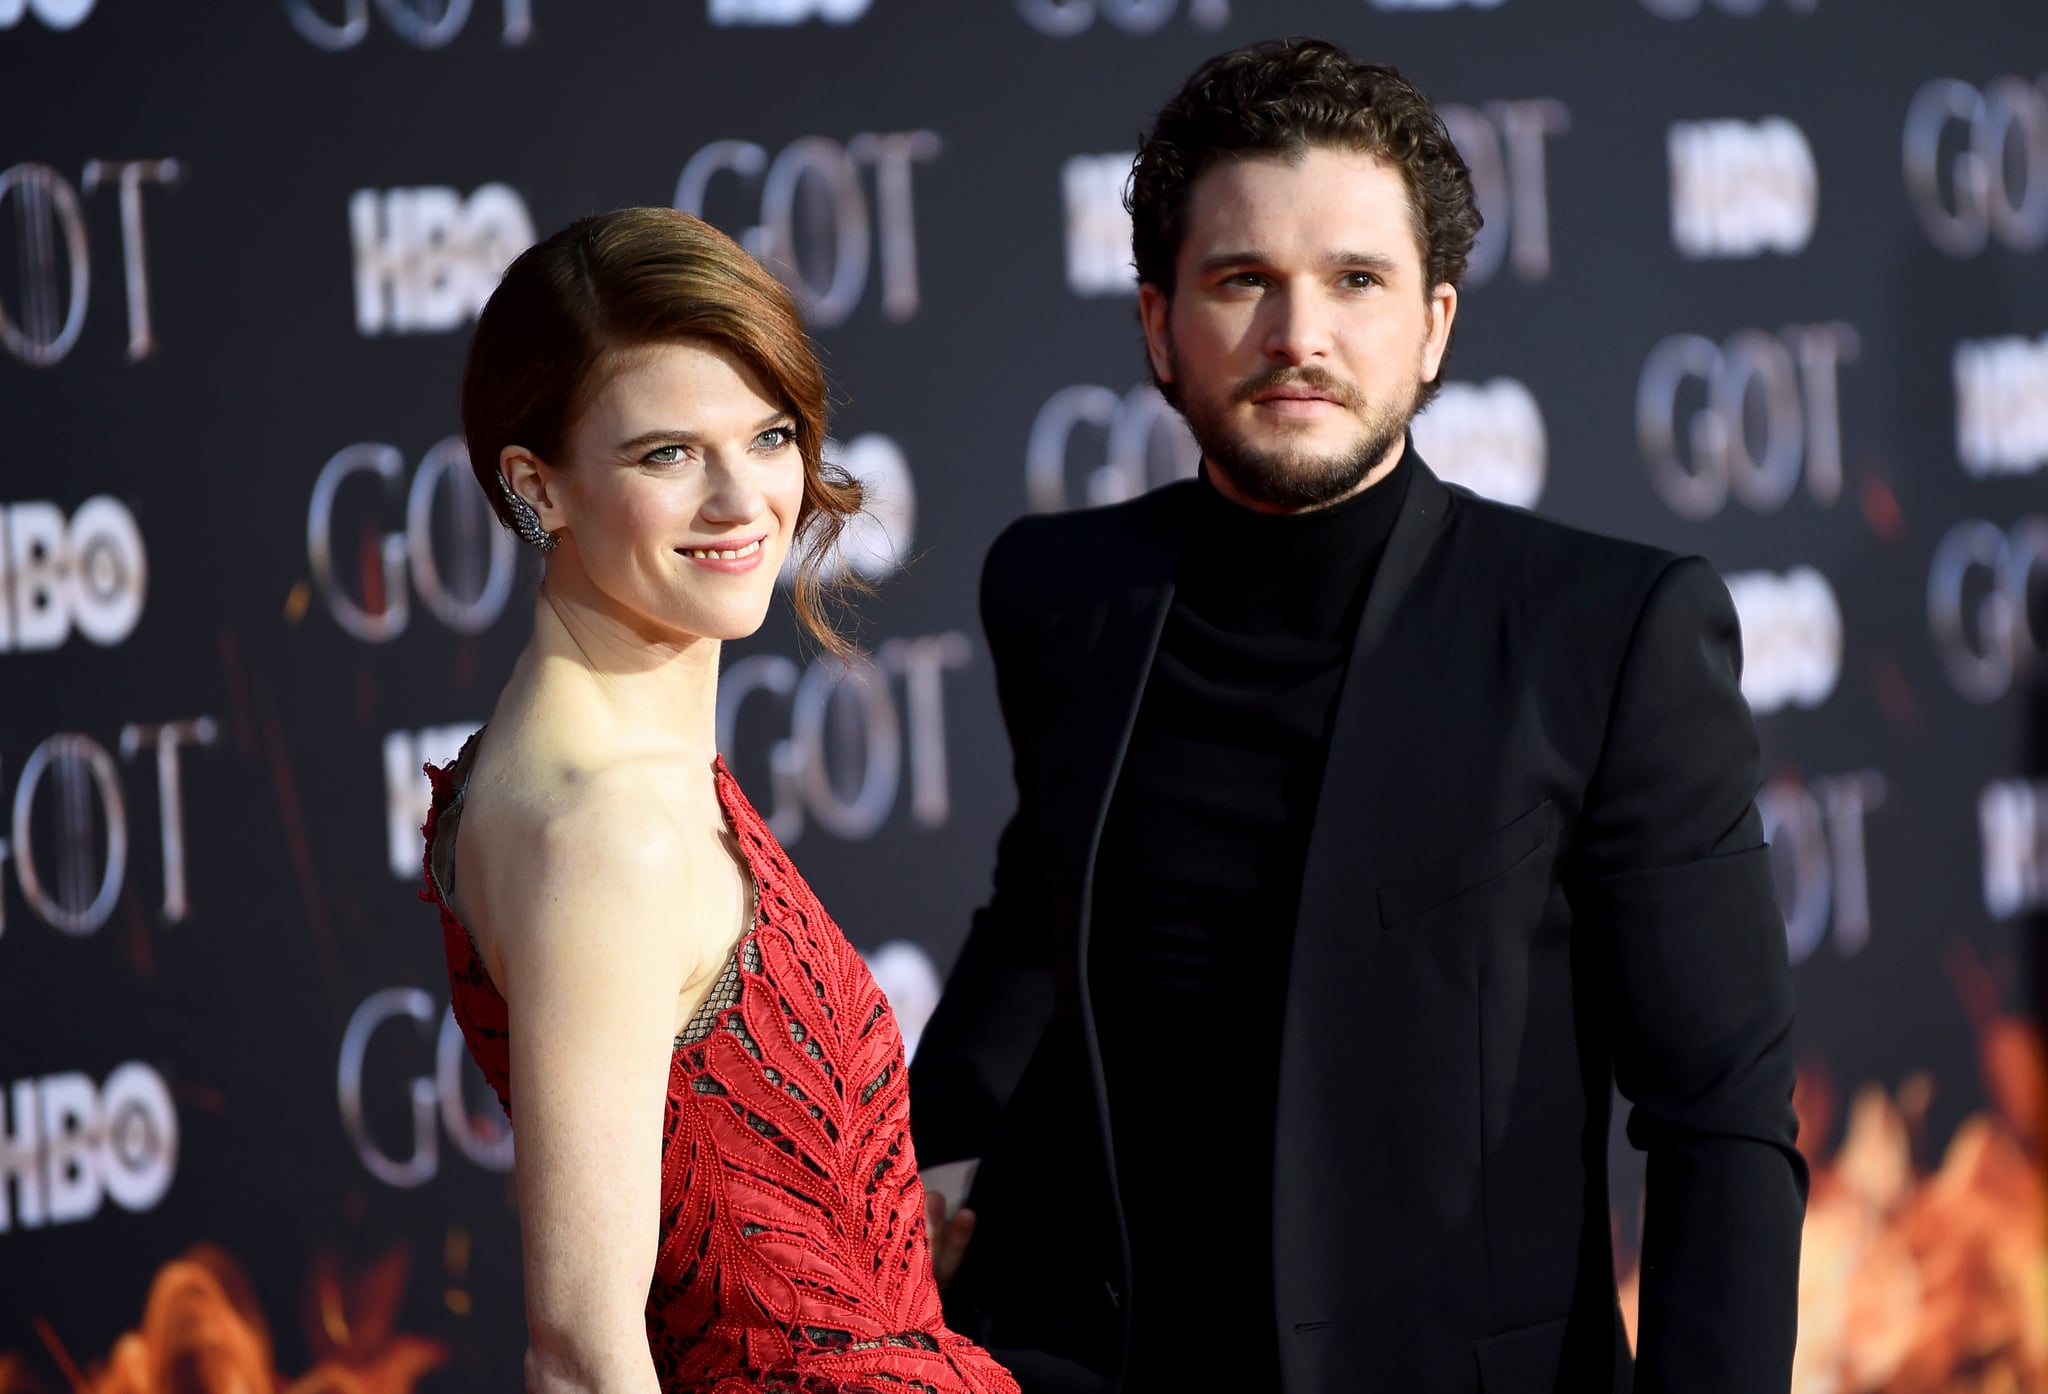 NEW YORK, NEW YORK - APRIL 03: Rose Leslie and Kit Harington attend the